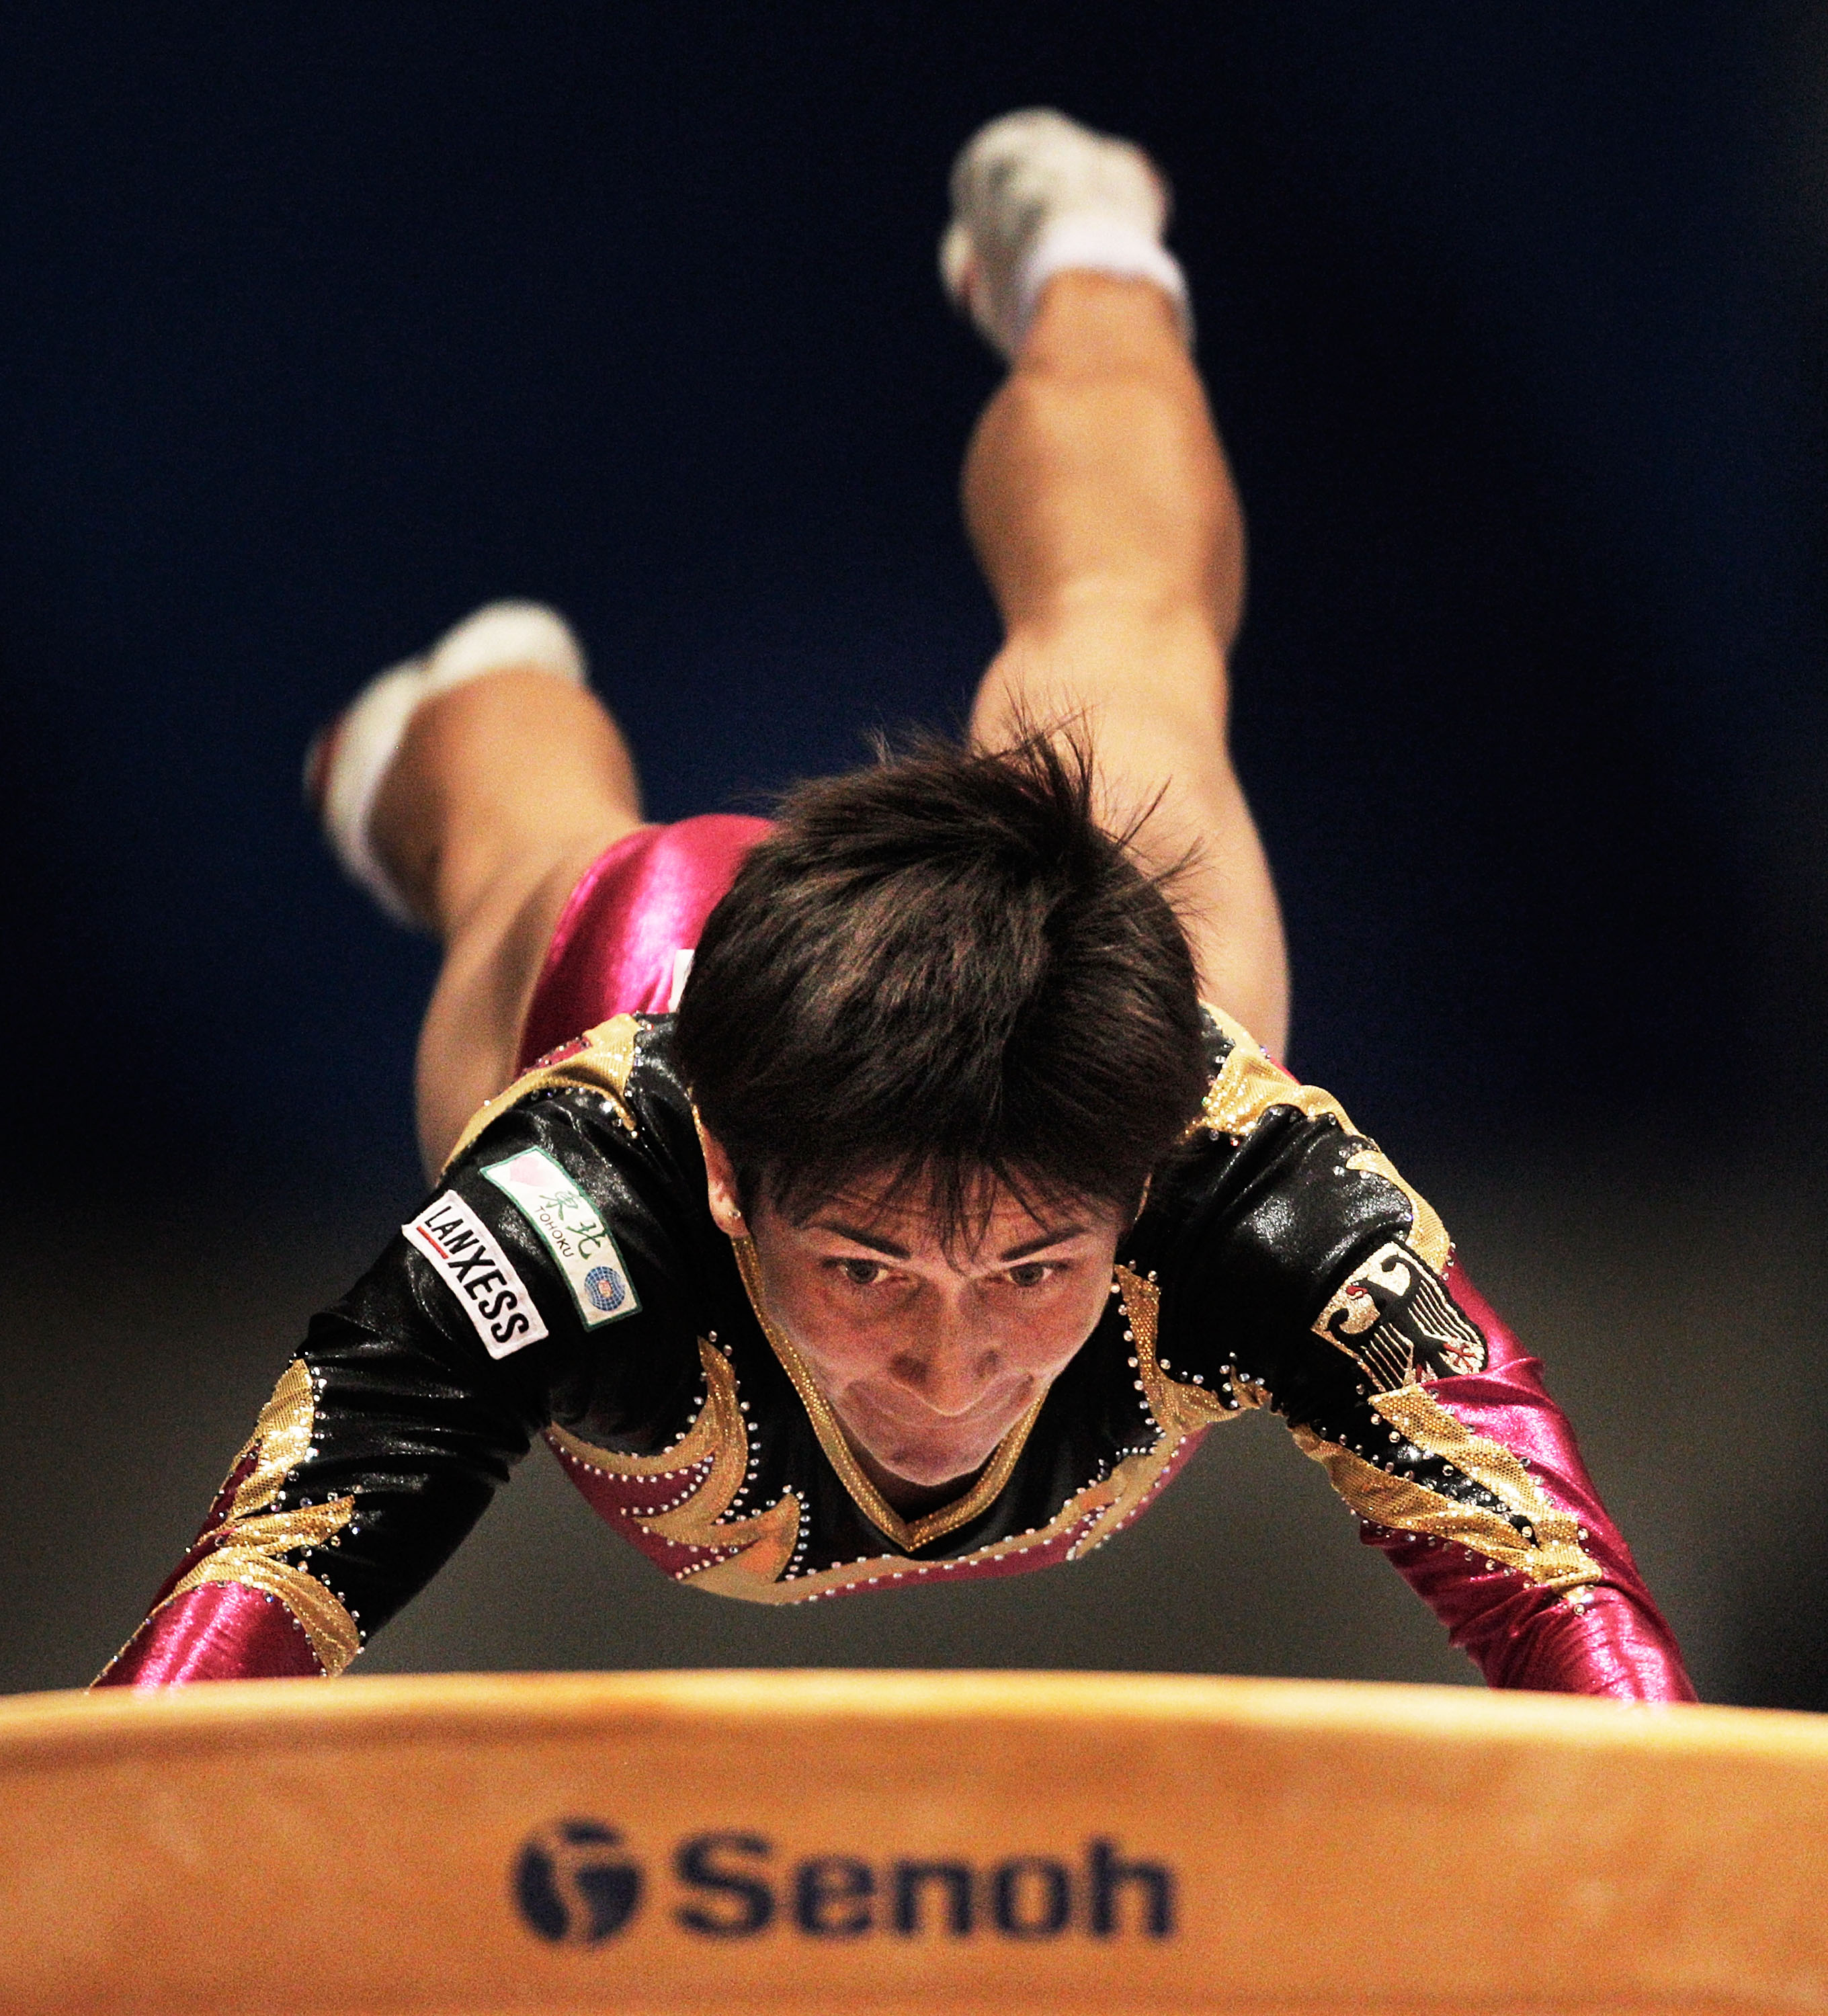 TOKYO, JAPAN - OCTOBER 15:  Oksana Chusovitina of Germany competes in the Vault apparatus final during day nine of the Artistic Gymnastics World Championships Tokyo 2011 at Tokyo Metropolitan Gymnasium on October 15, 2011 in Tokyo, Japan.  (Photo by Adam Pretty/Getty Images)